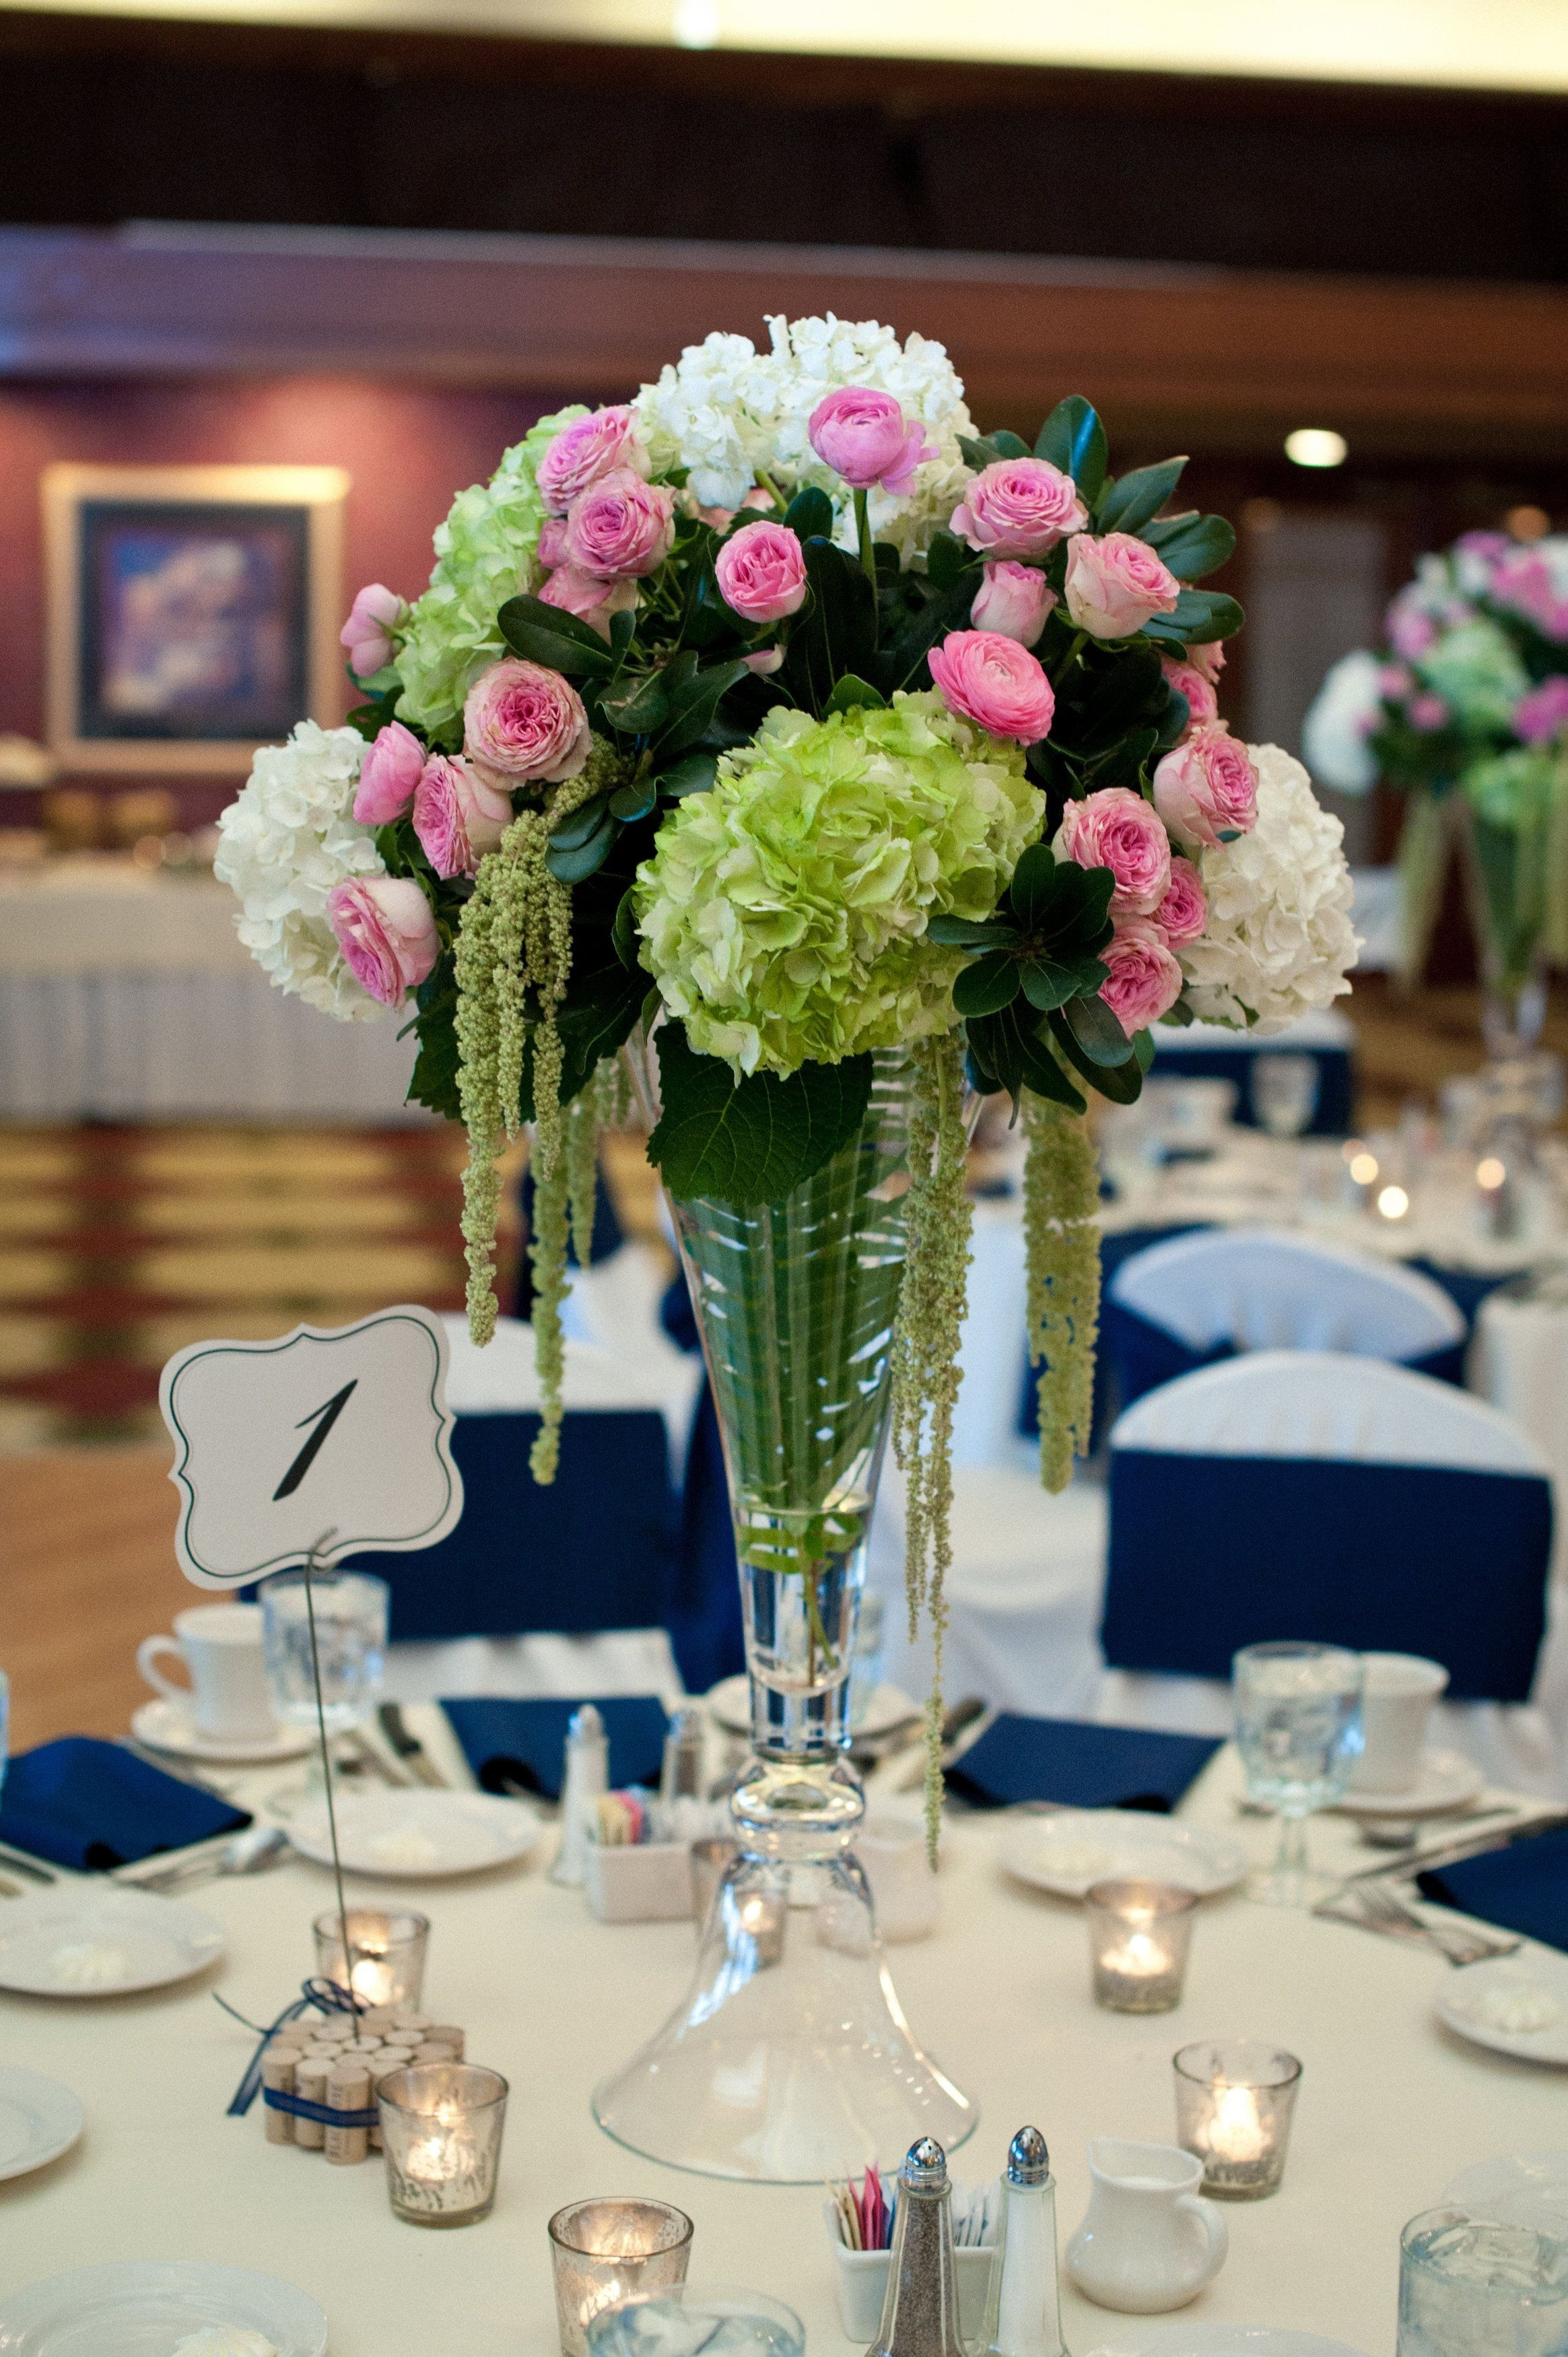 flowers in white vase of hydrangea decorations wedding unique cool wedding ideas as for h with regard to hydrangea decorations wedding elegant tall wedding centerpieces green hydrangea pink